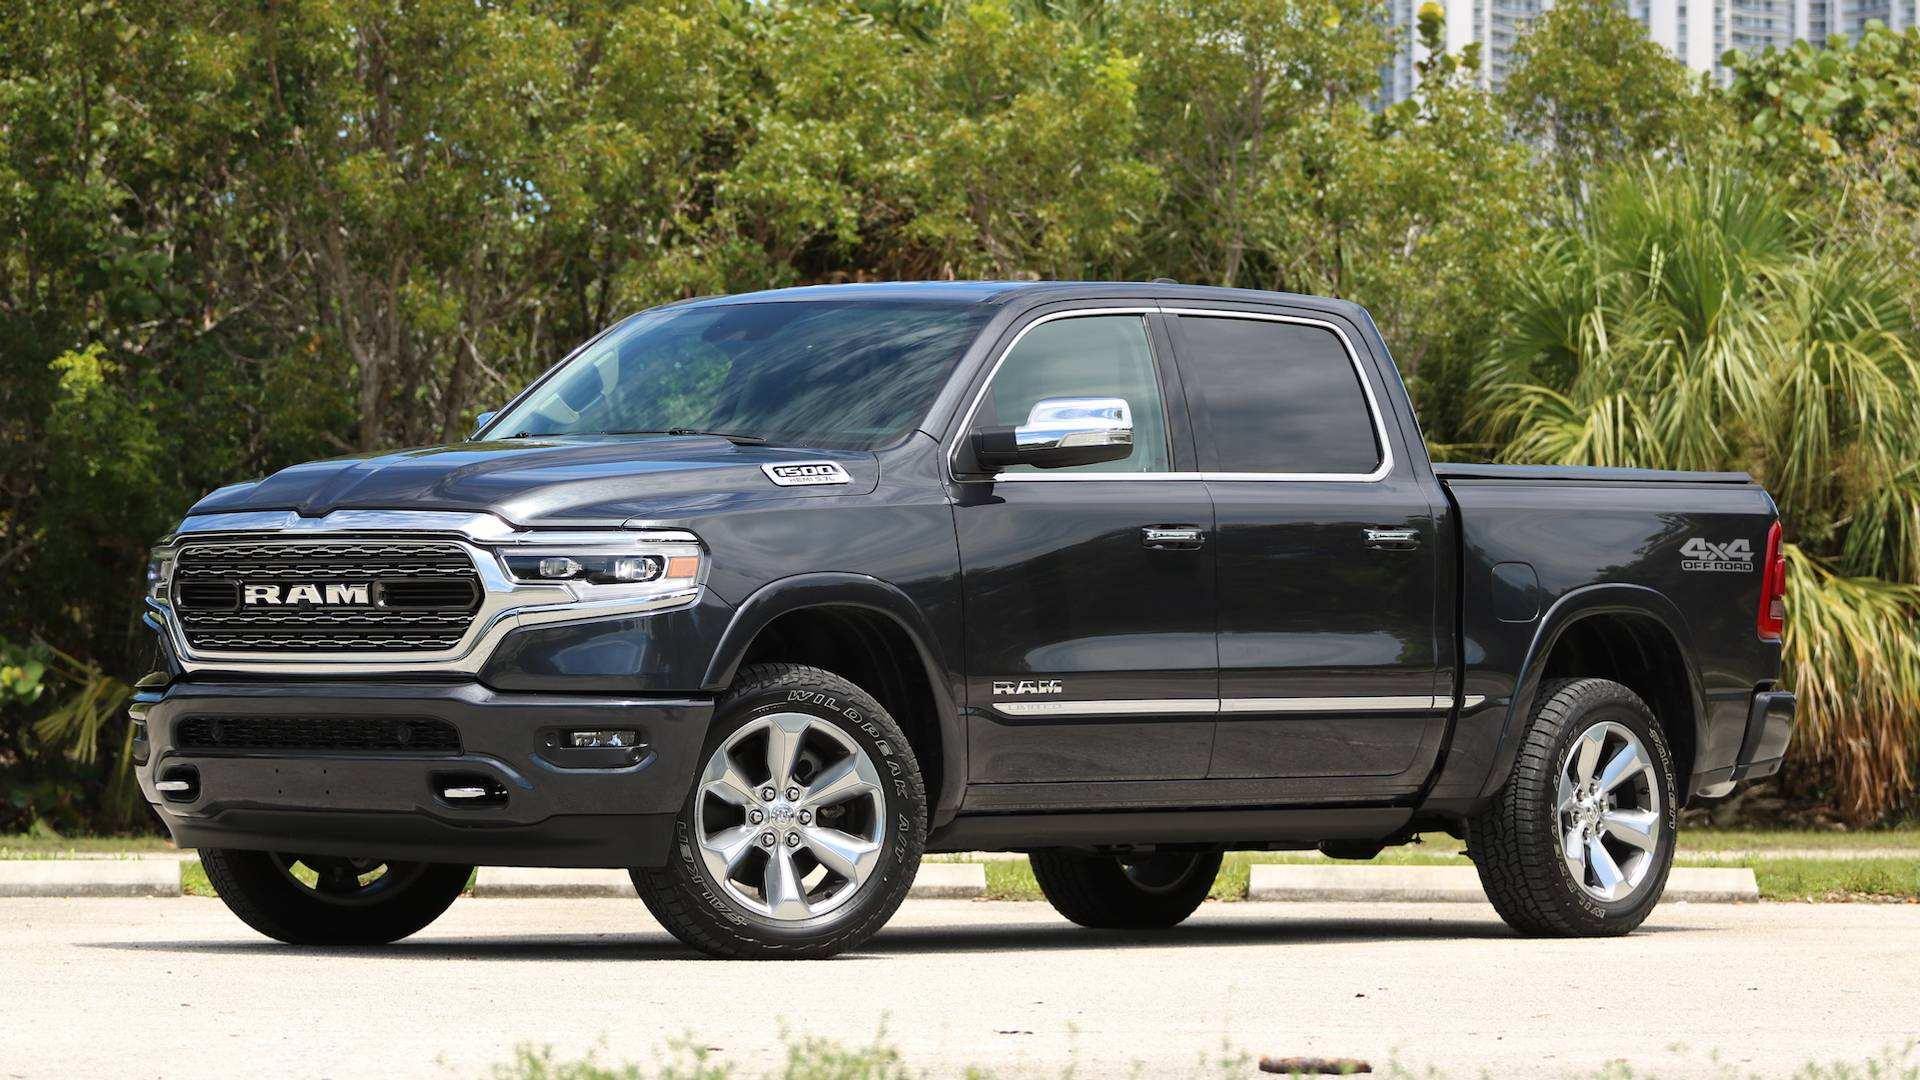 93 Concept of 2019 Ram 1500 Specs and Review by 2019 Ram 1500